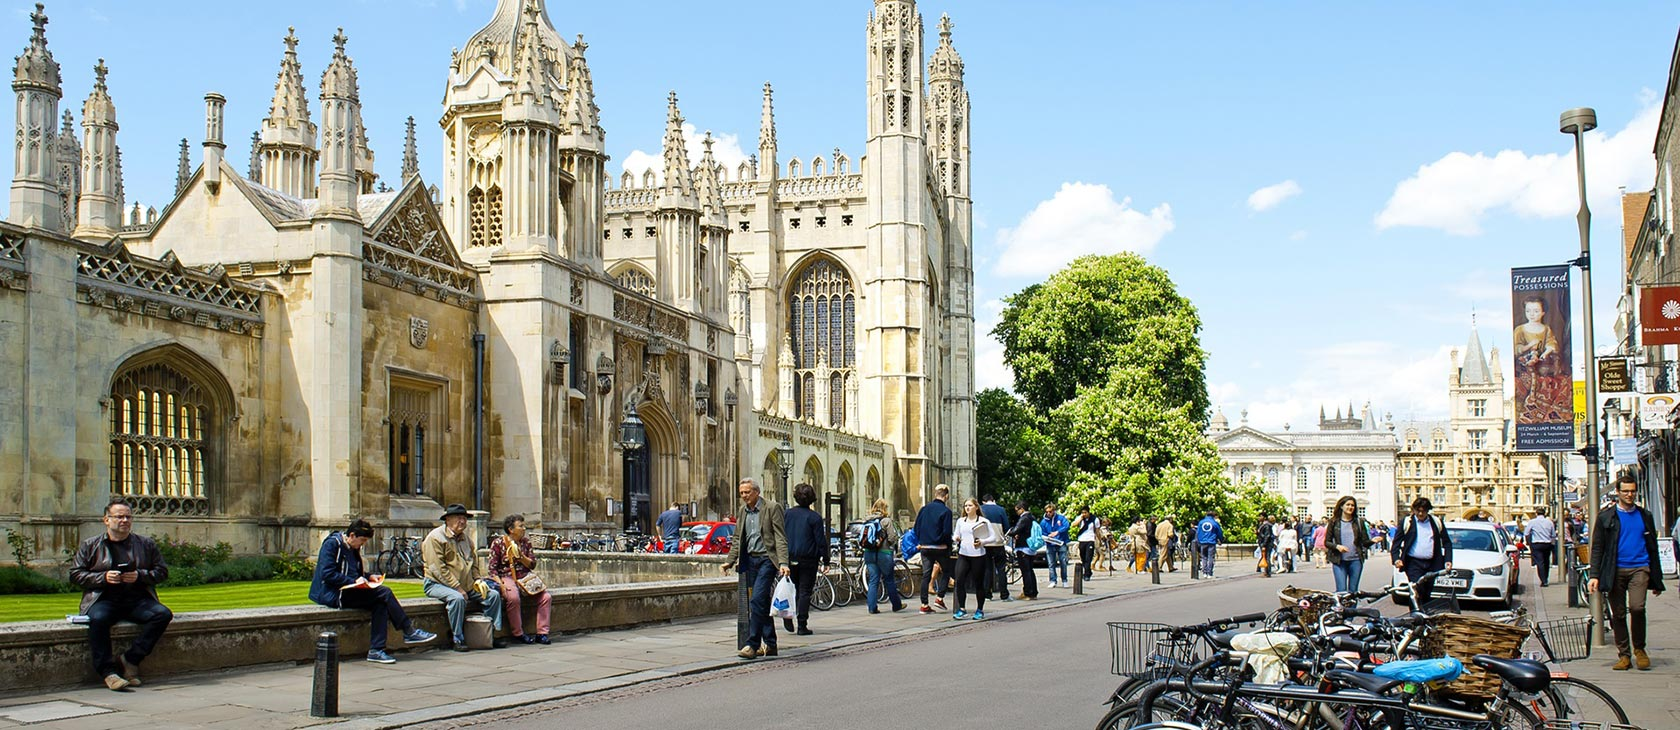 Pedestrians and students walking on the street near Cambridge University